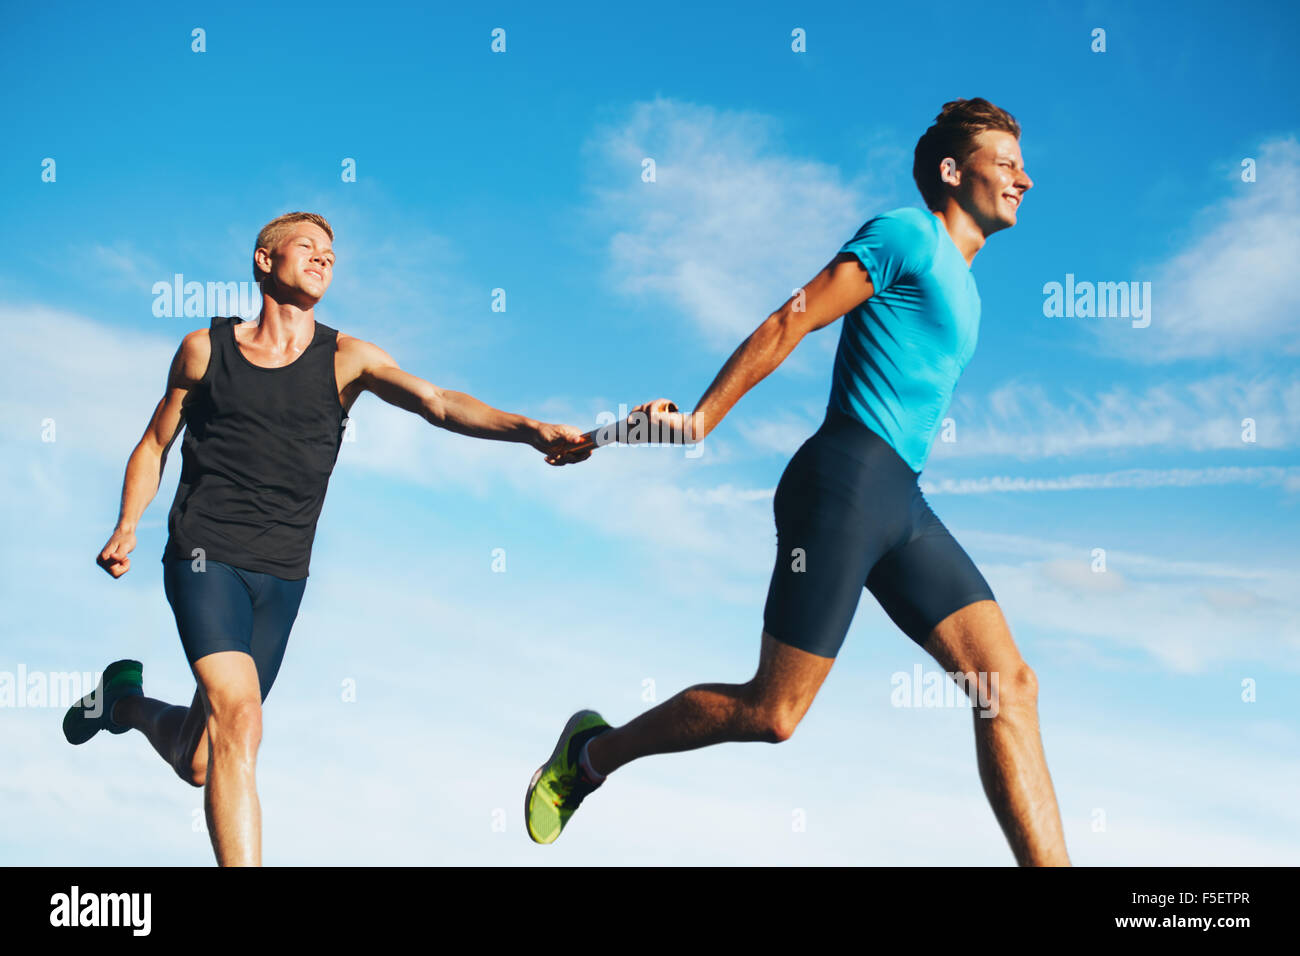 Portrait of young athletes pass the baton in a track relay against sky. Young runner practicing a relay race. - Stock Image